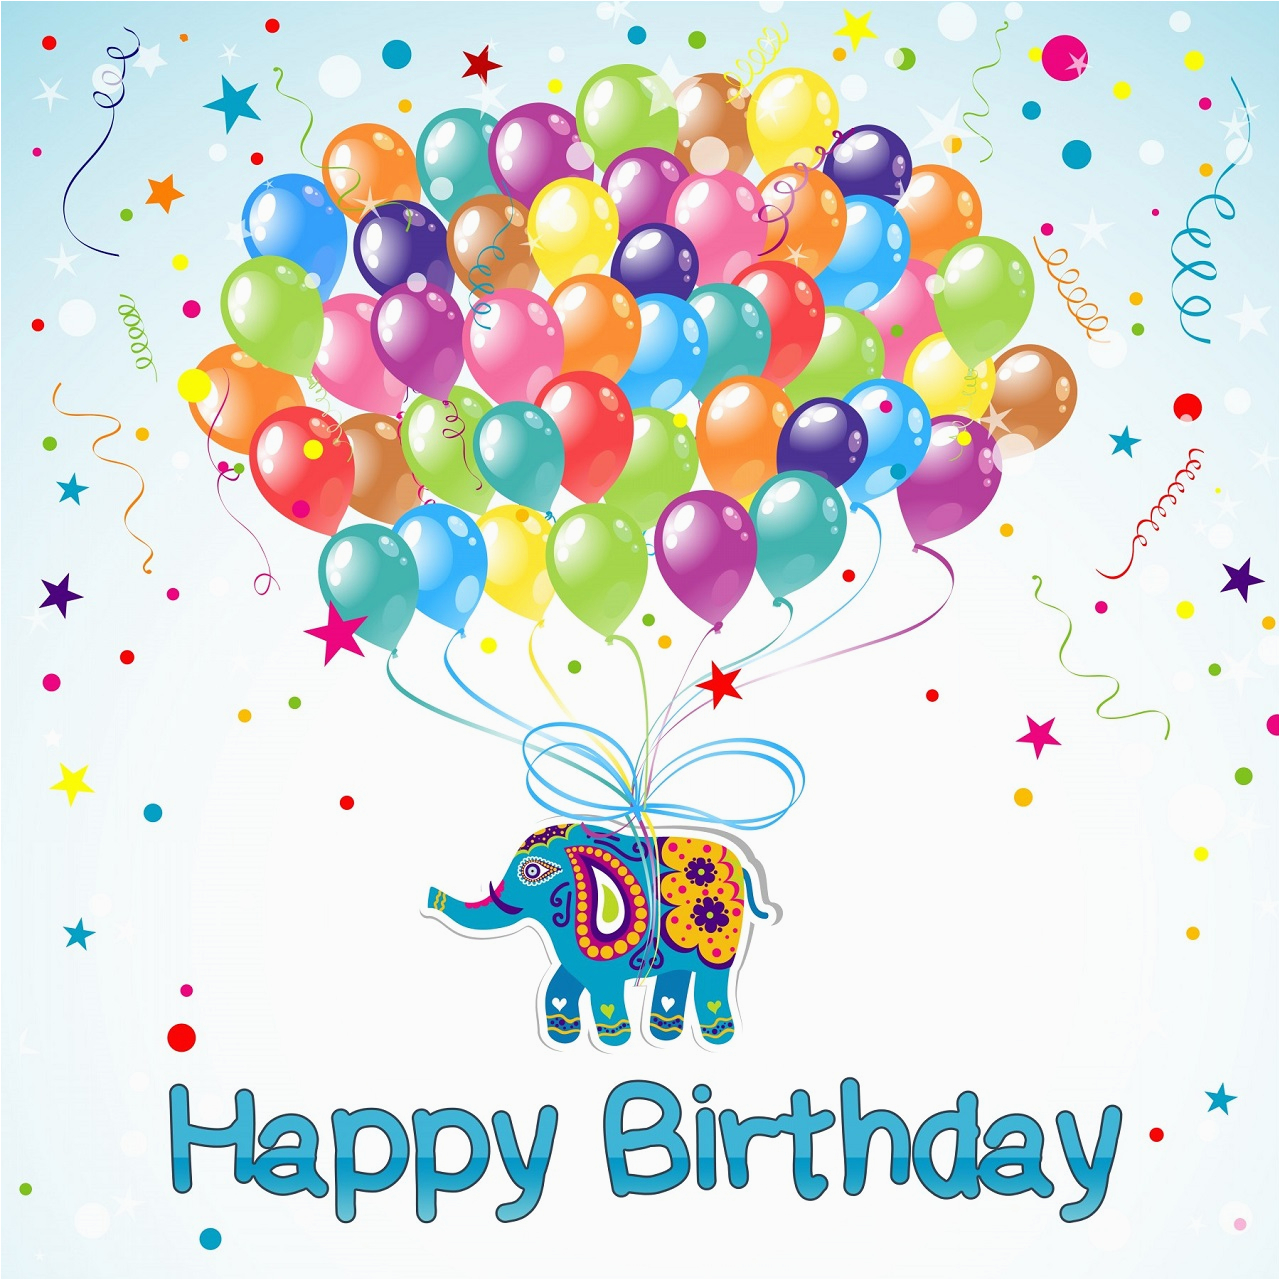 Online Free To Make Happy Birthday Greeting Cards